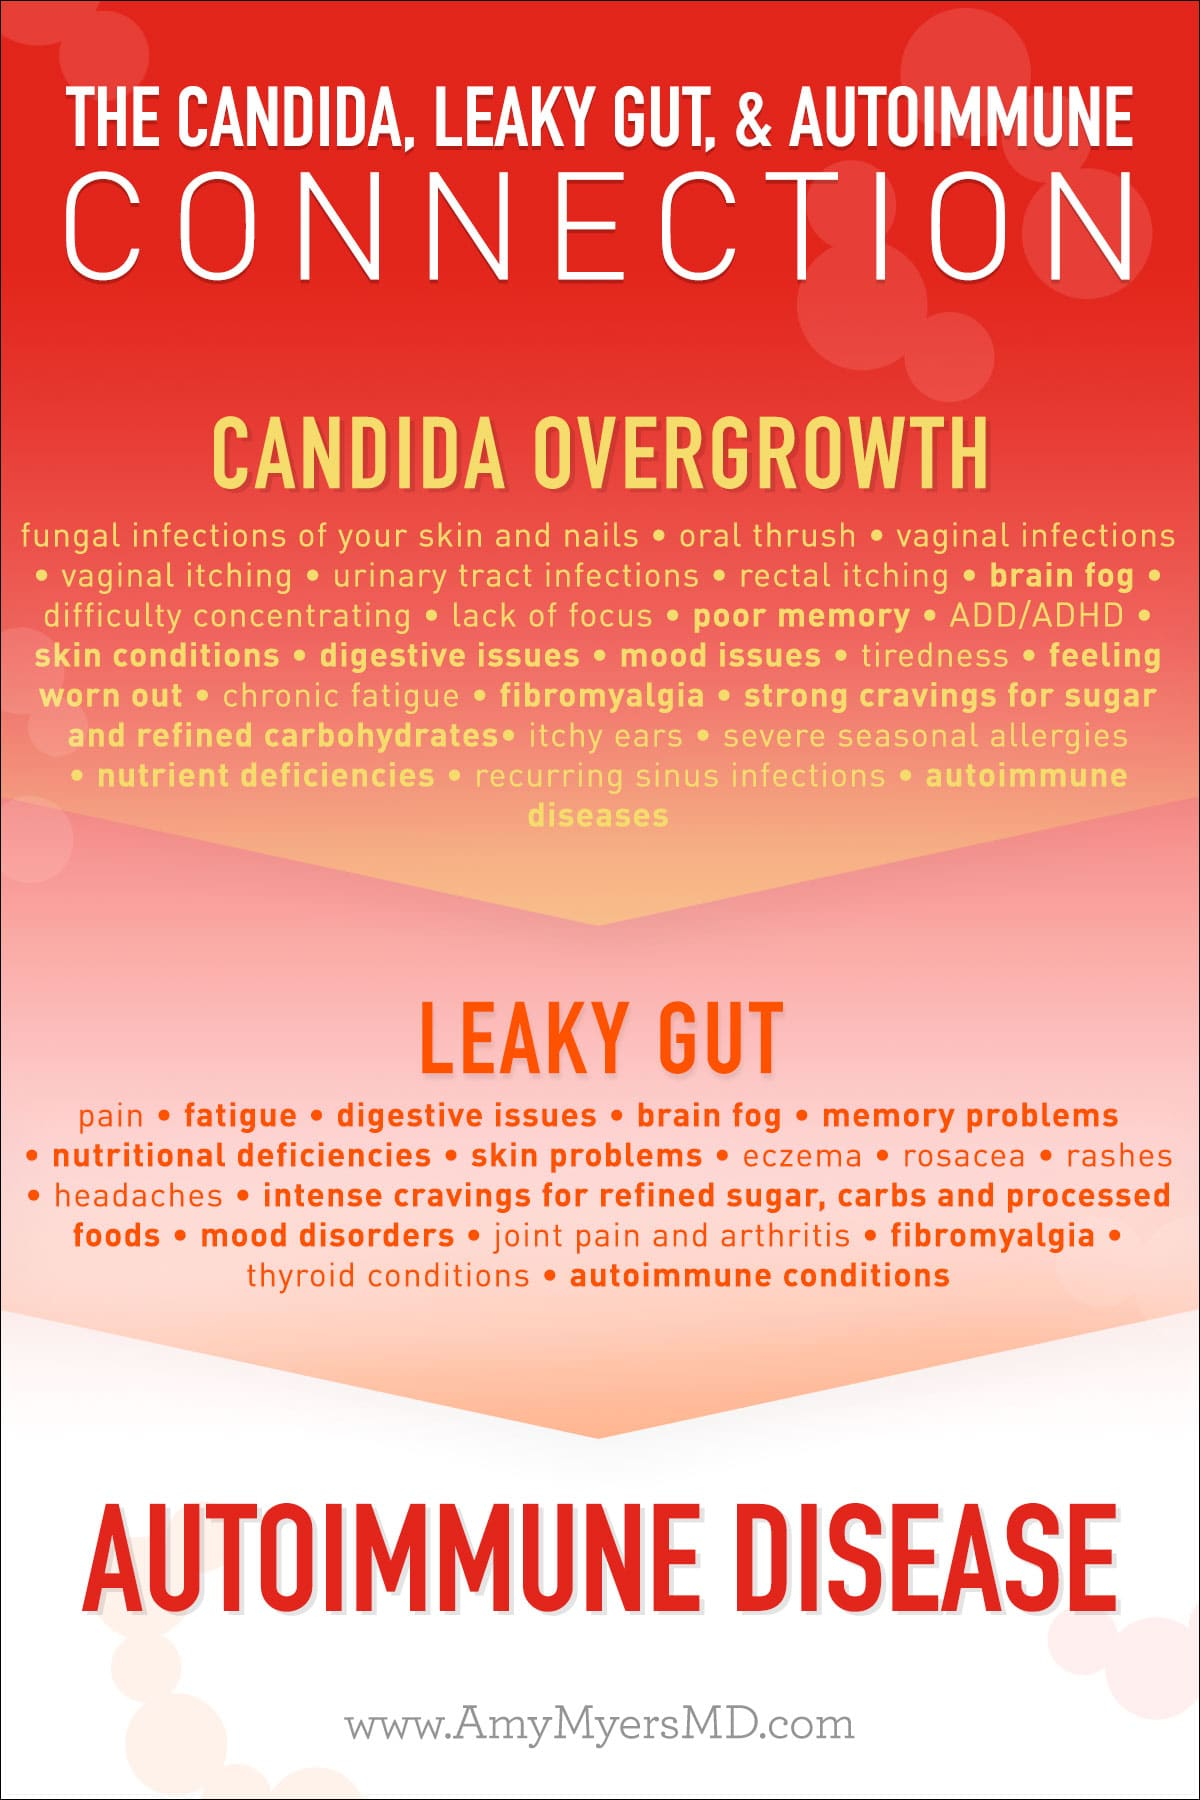 Infographic_the Candida Autoimmune Connection